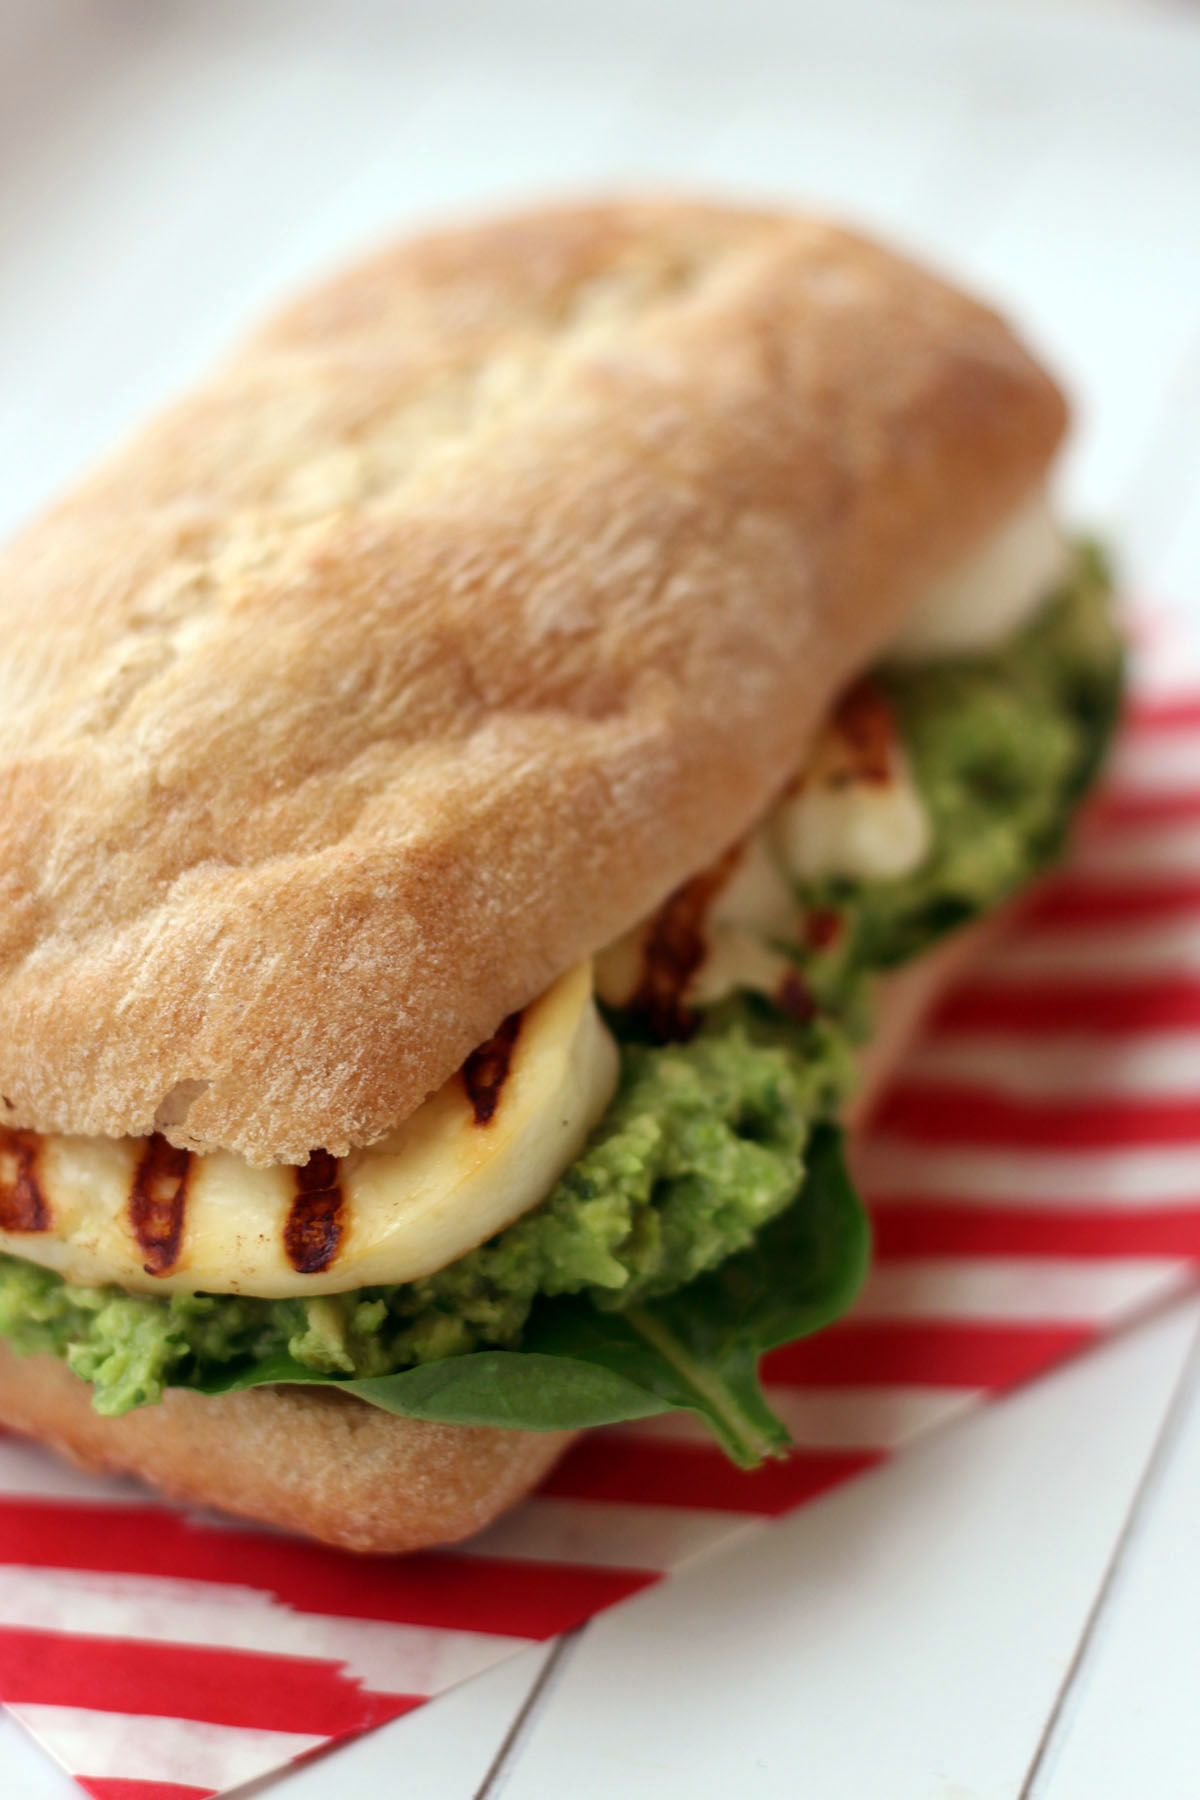 Halloumi Sandwich with Avocado, Pea and Mint Pesto